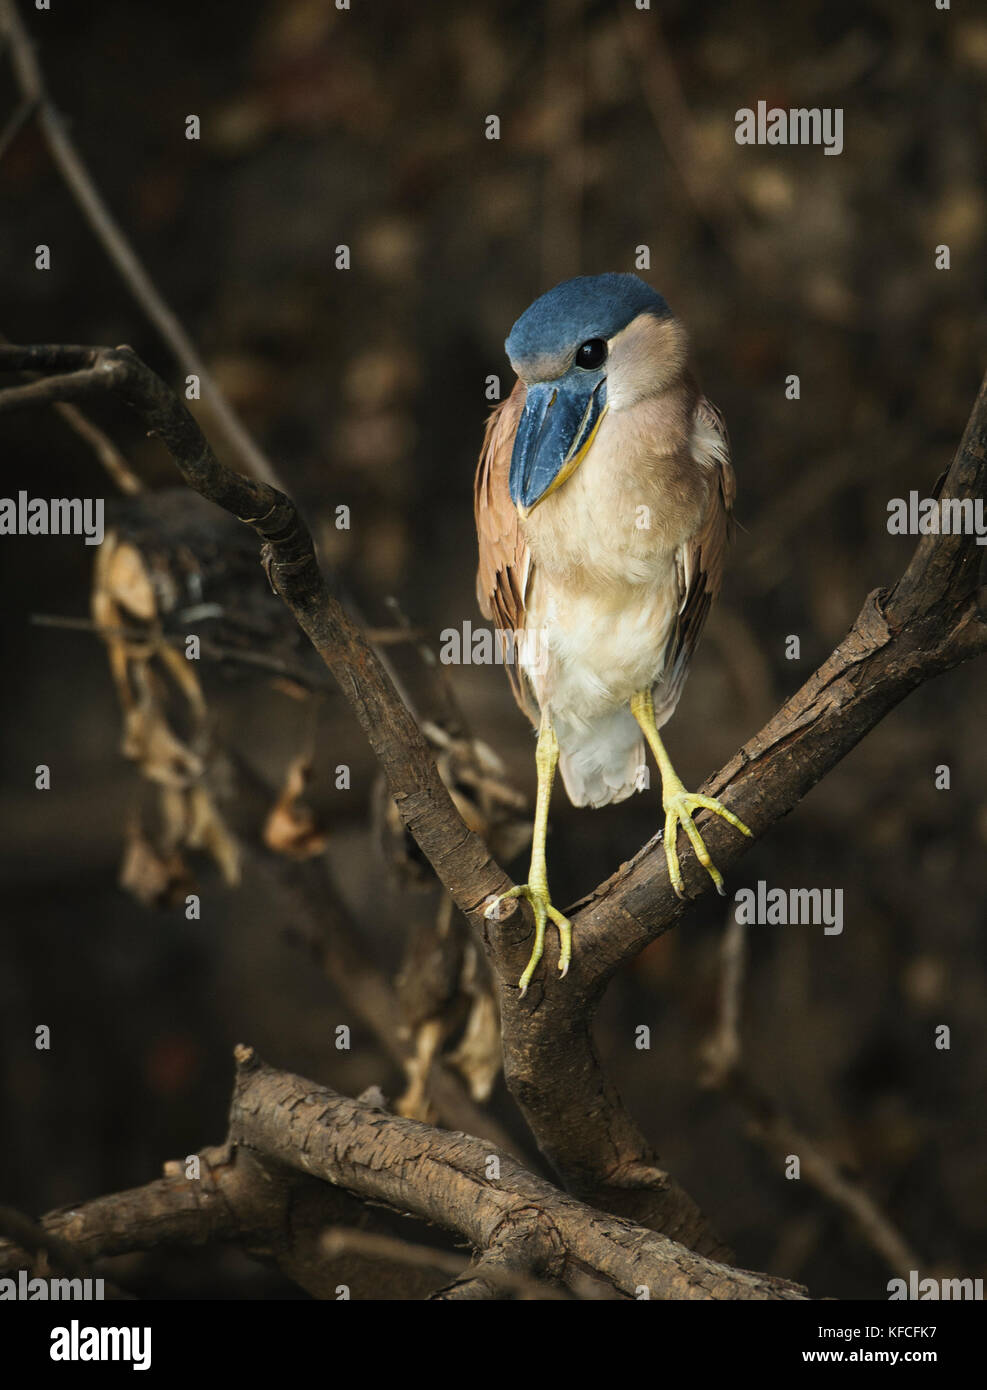 A Boat-billed Heron (Cochlearius cochlearius) from South Pantanal, Brazil - Stock Image